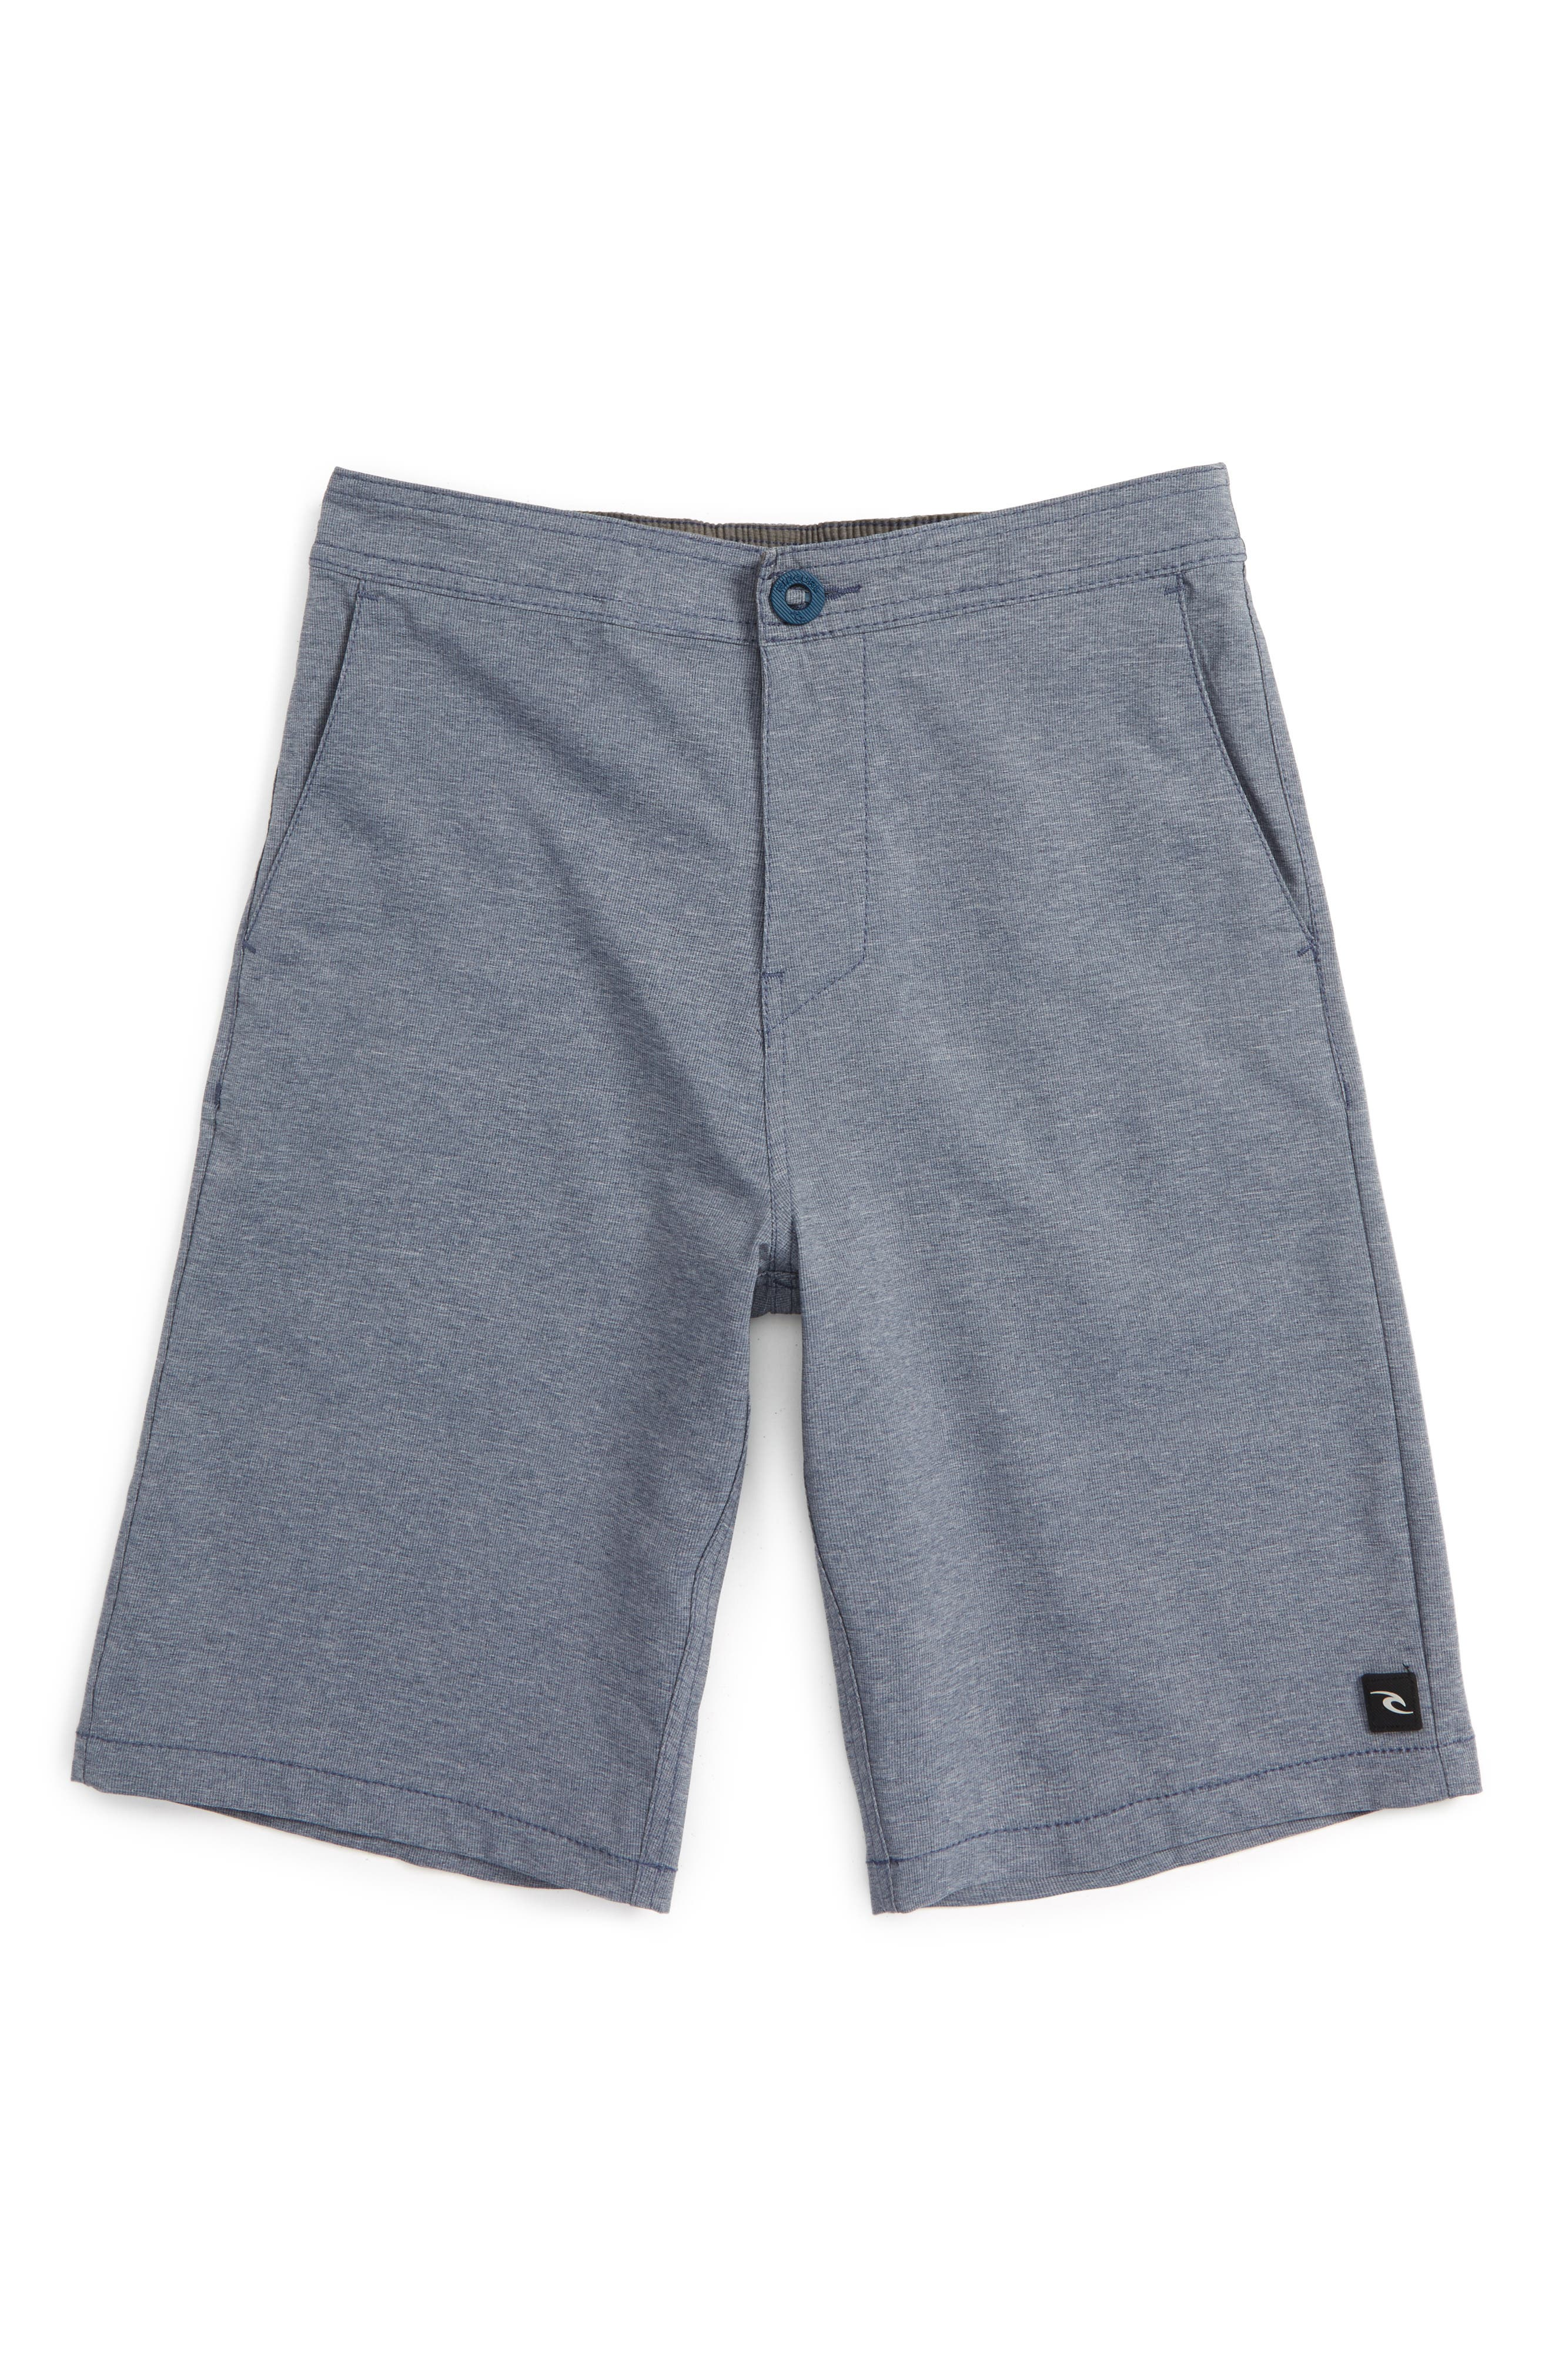 Main Image - Rip Curl Omaha Hybrid Board Shorts (Big Boys)